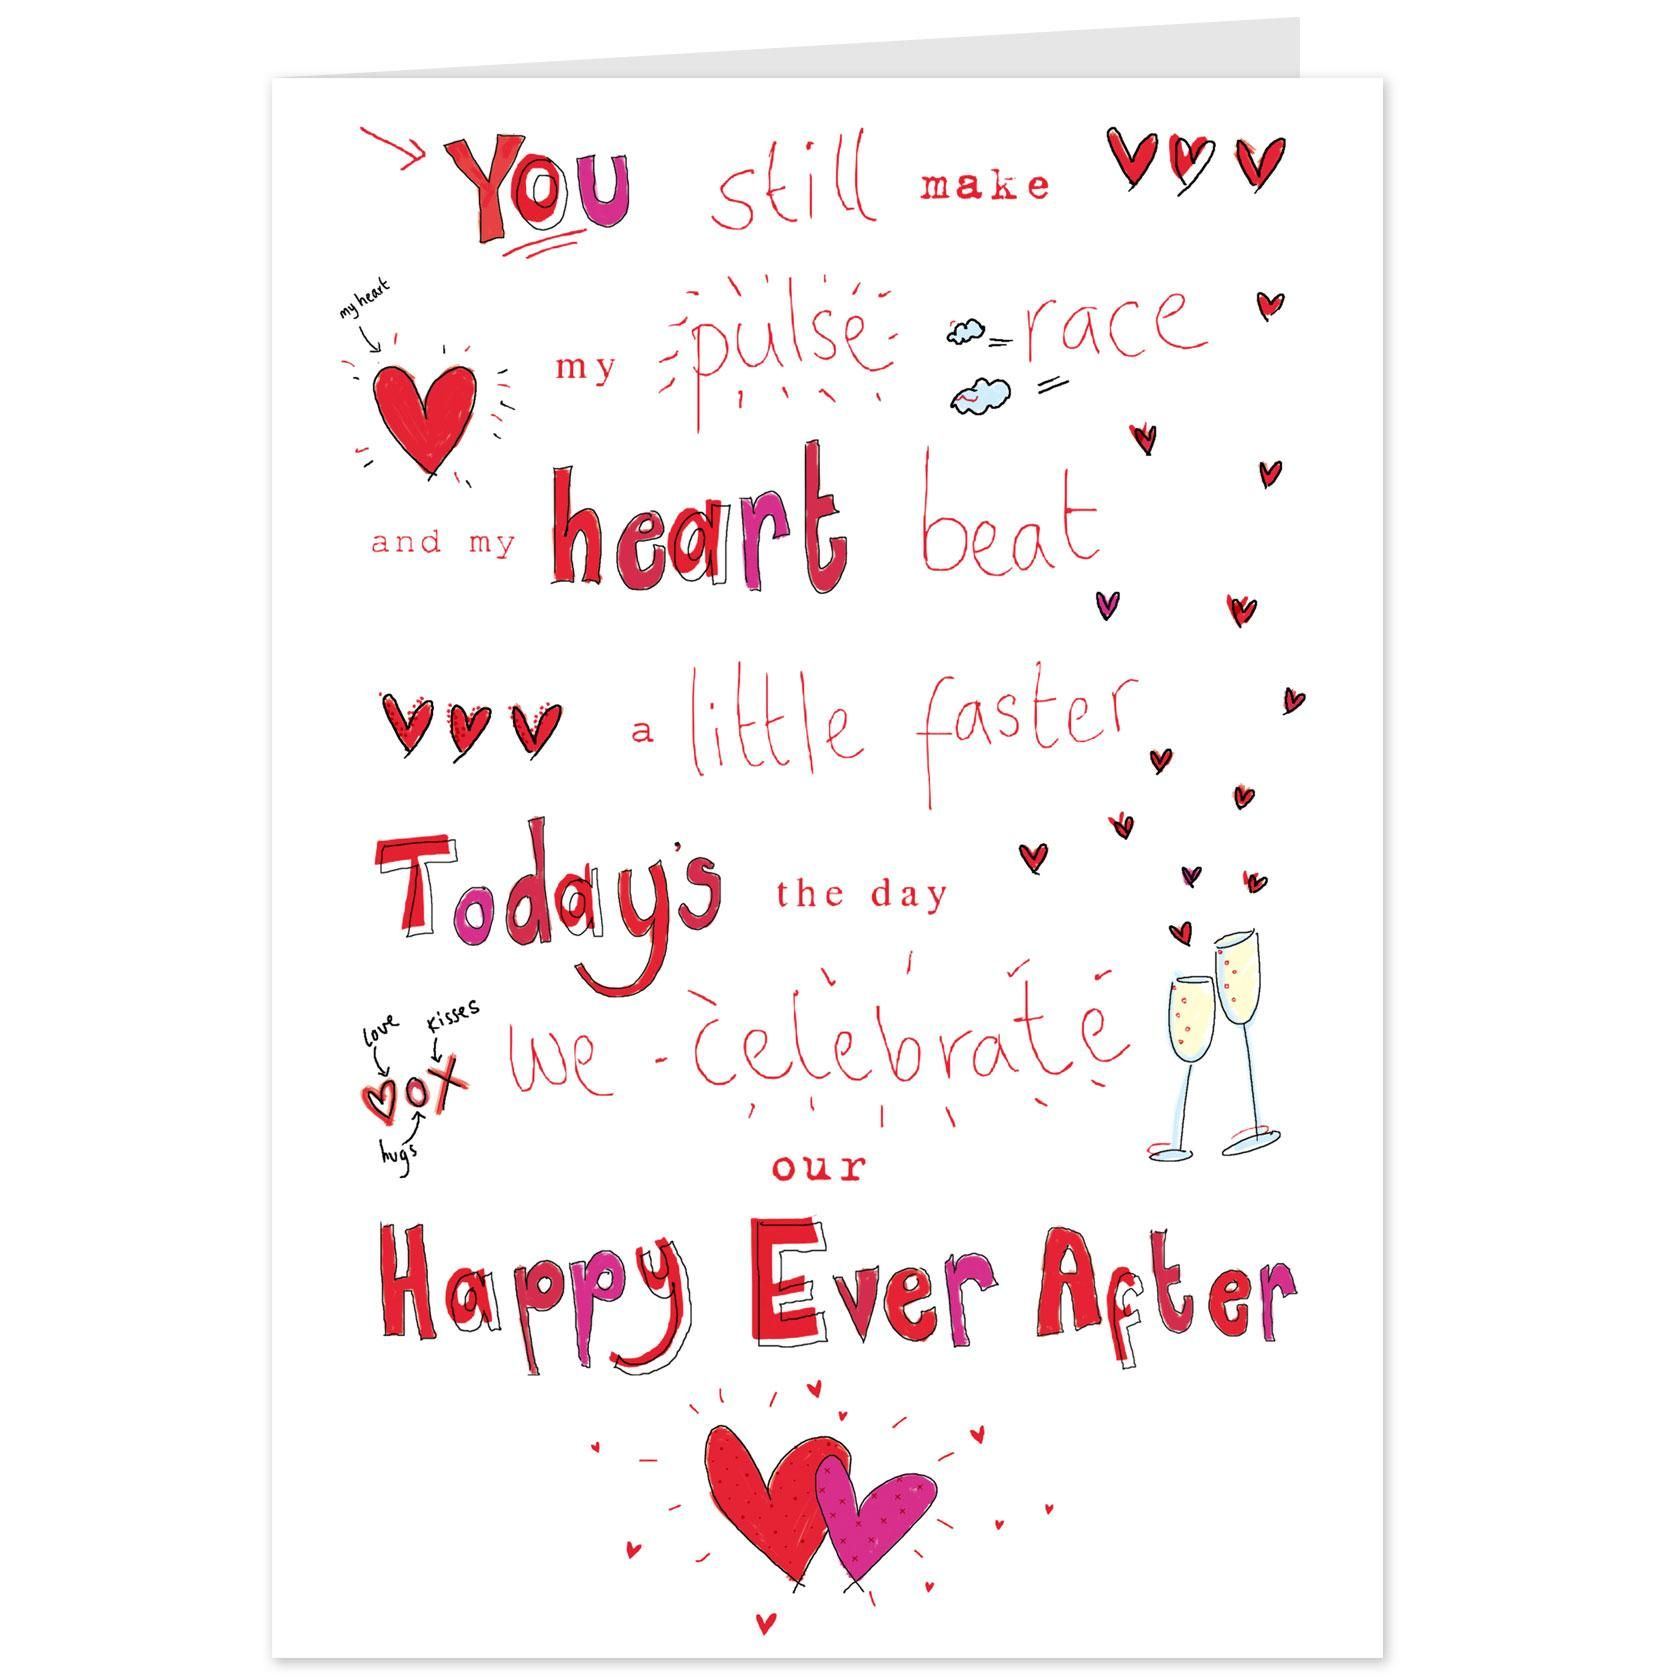 Pin By Marietta Suemith On H Ppy Nnivers Ry Hallmark Cards Free Anniversary Cards Hallmark Greeting Cards